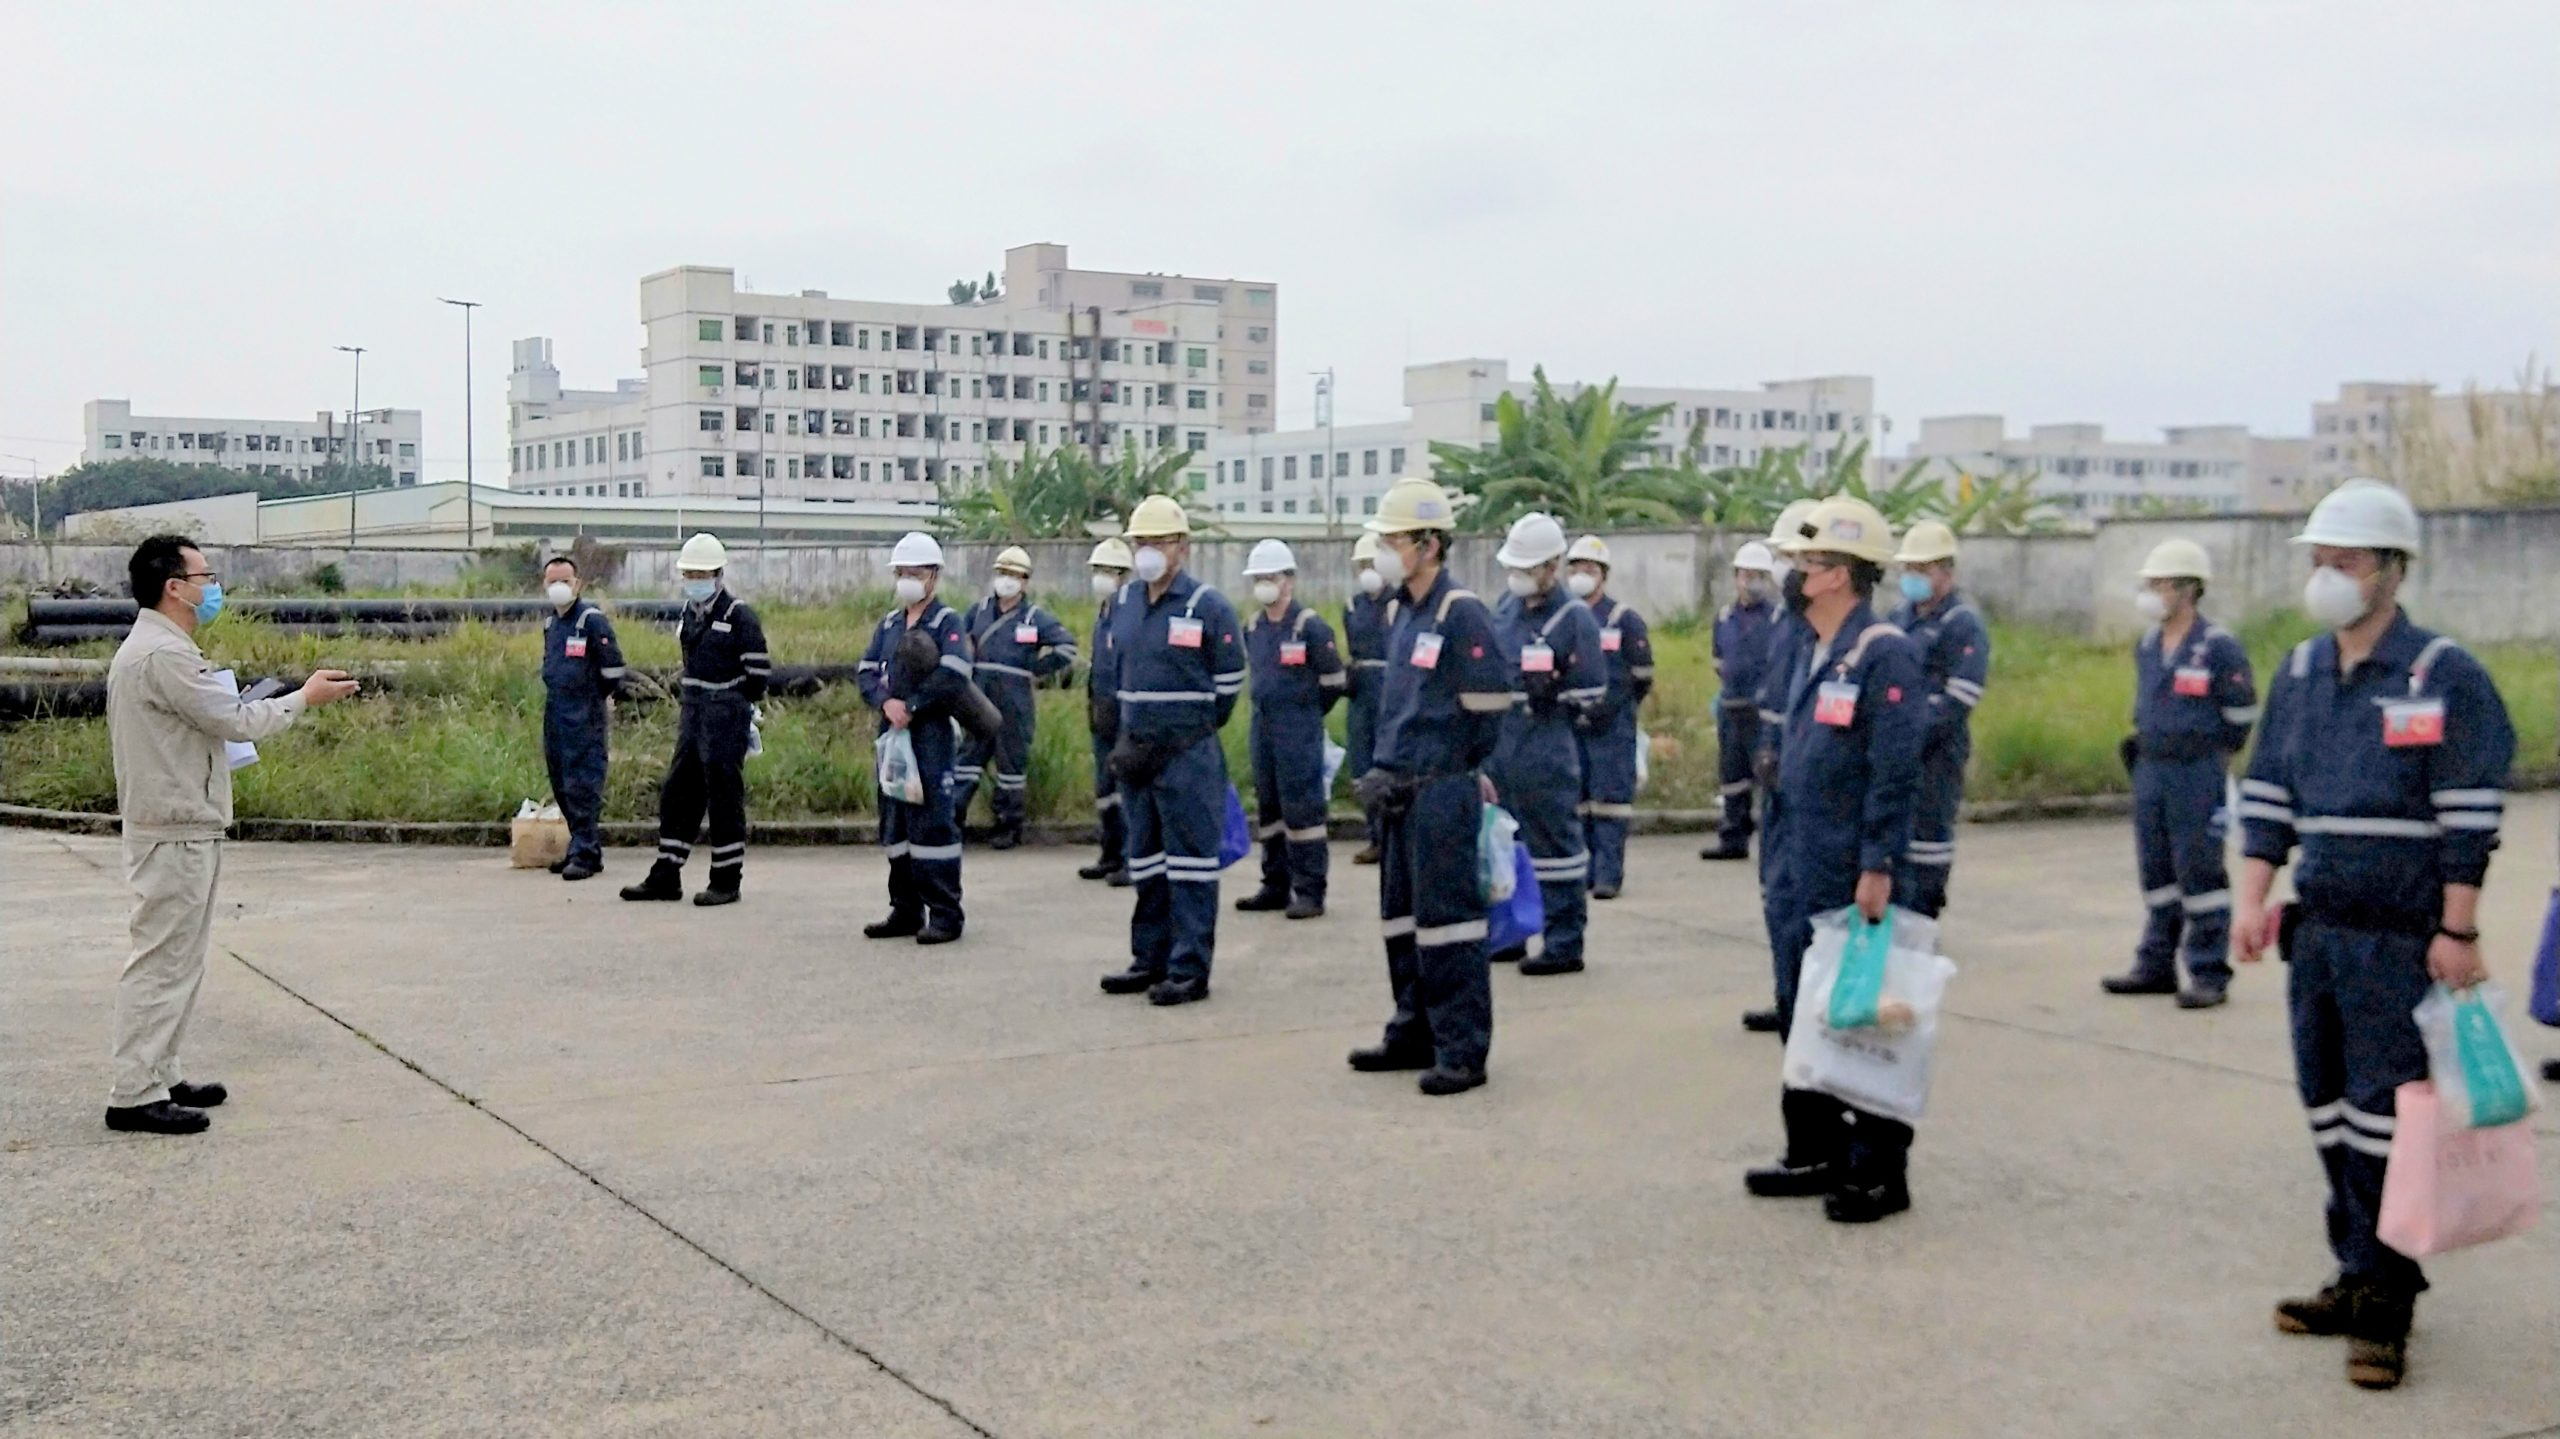 HATS OFF TO THE HEROES OF WUHAN!